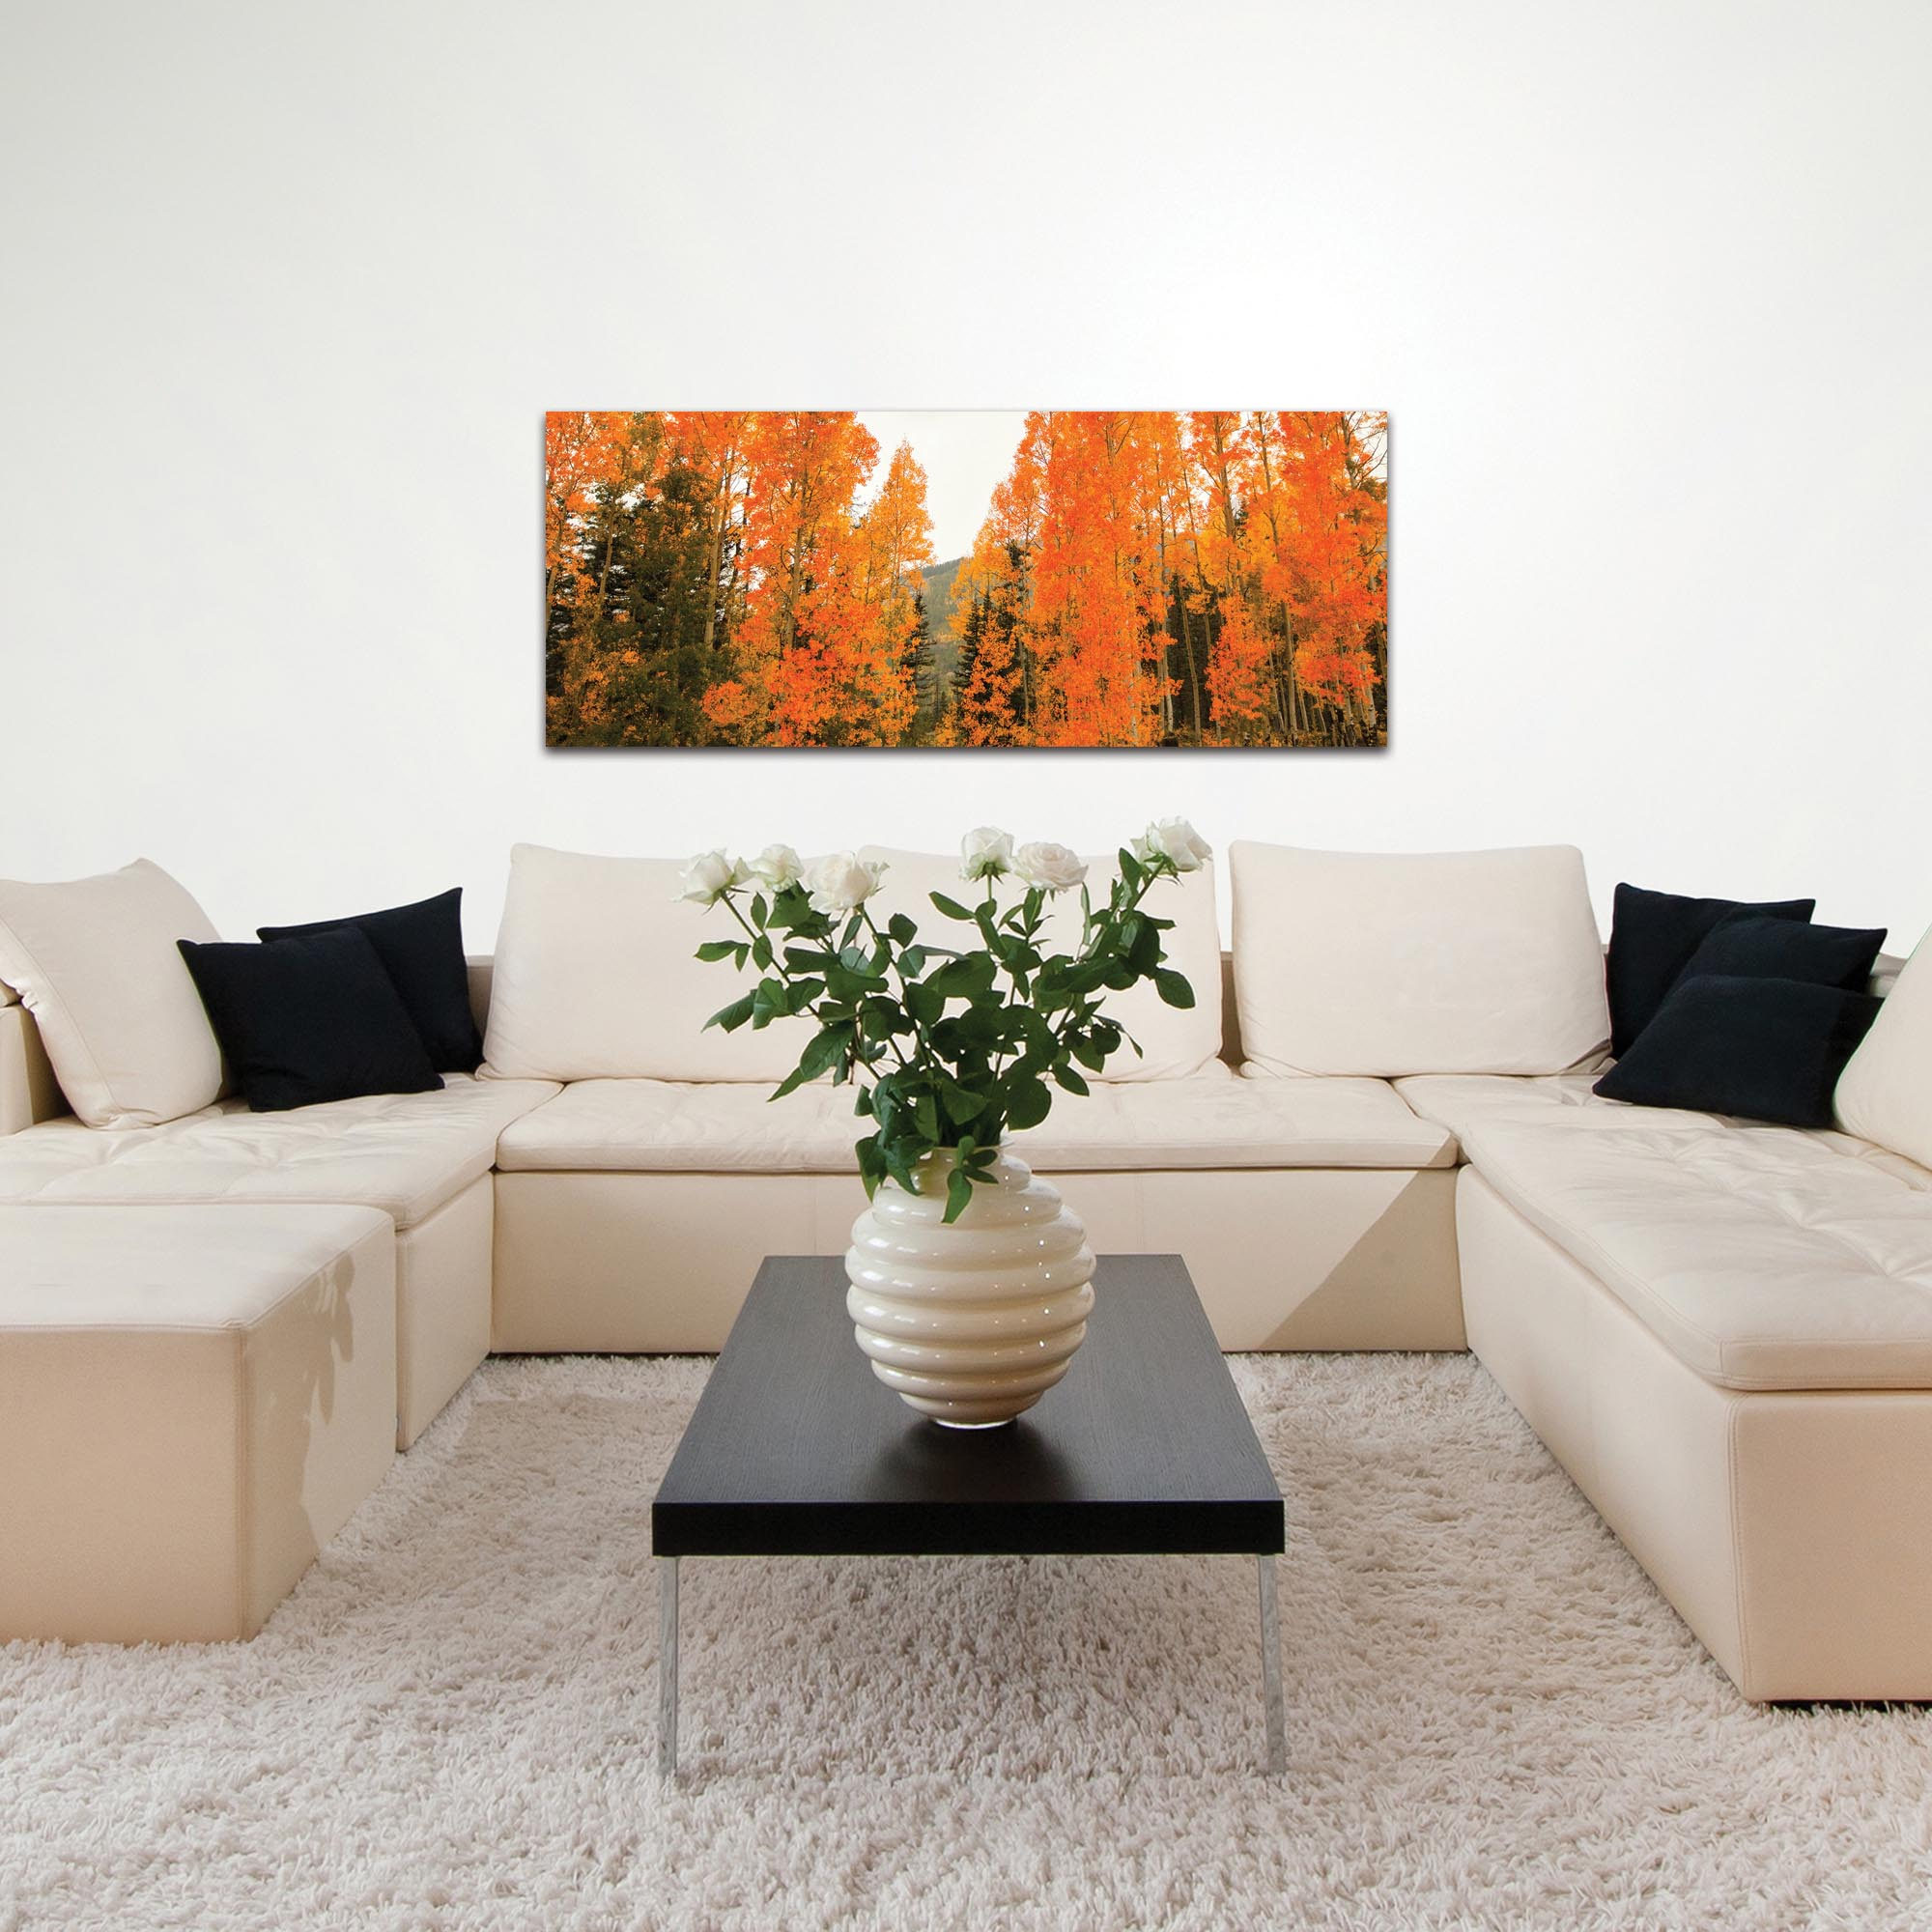 Landscape Photography 'Aspen Fire' - Autumn Nature Art on Metal or Plexiglass - Lifestyle View